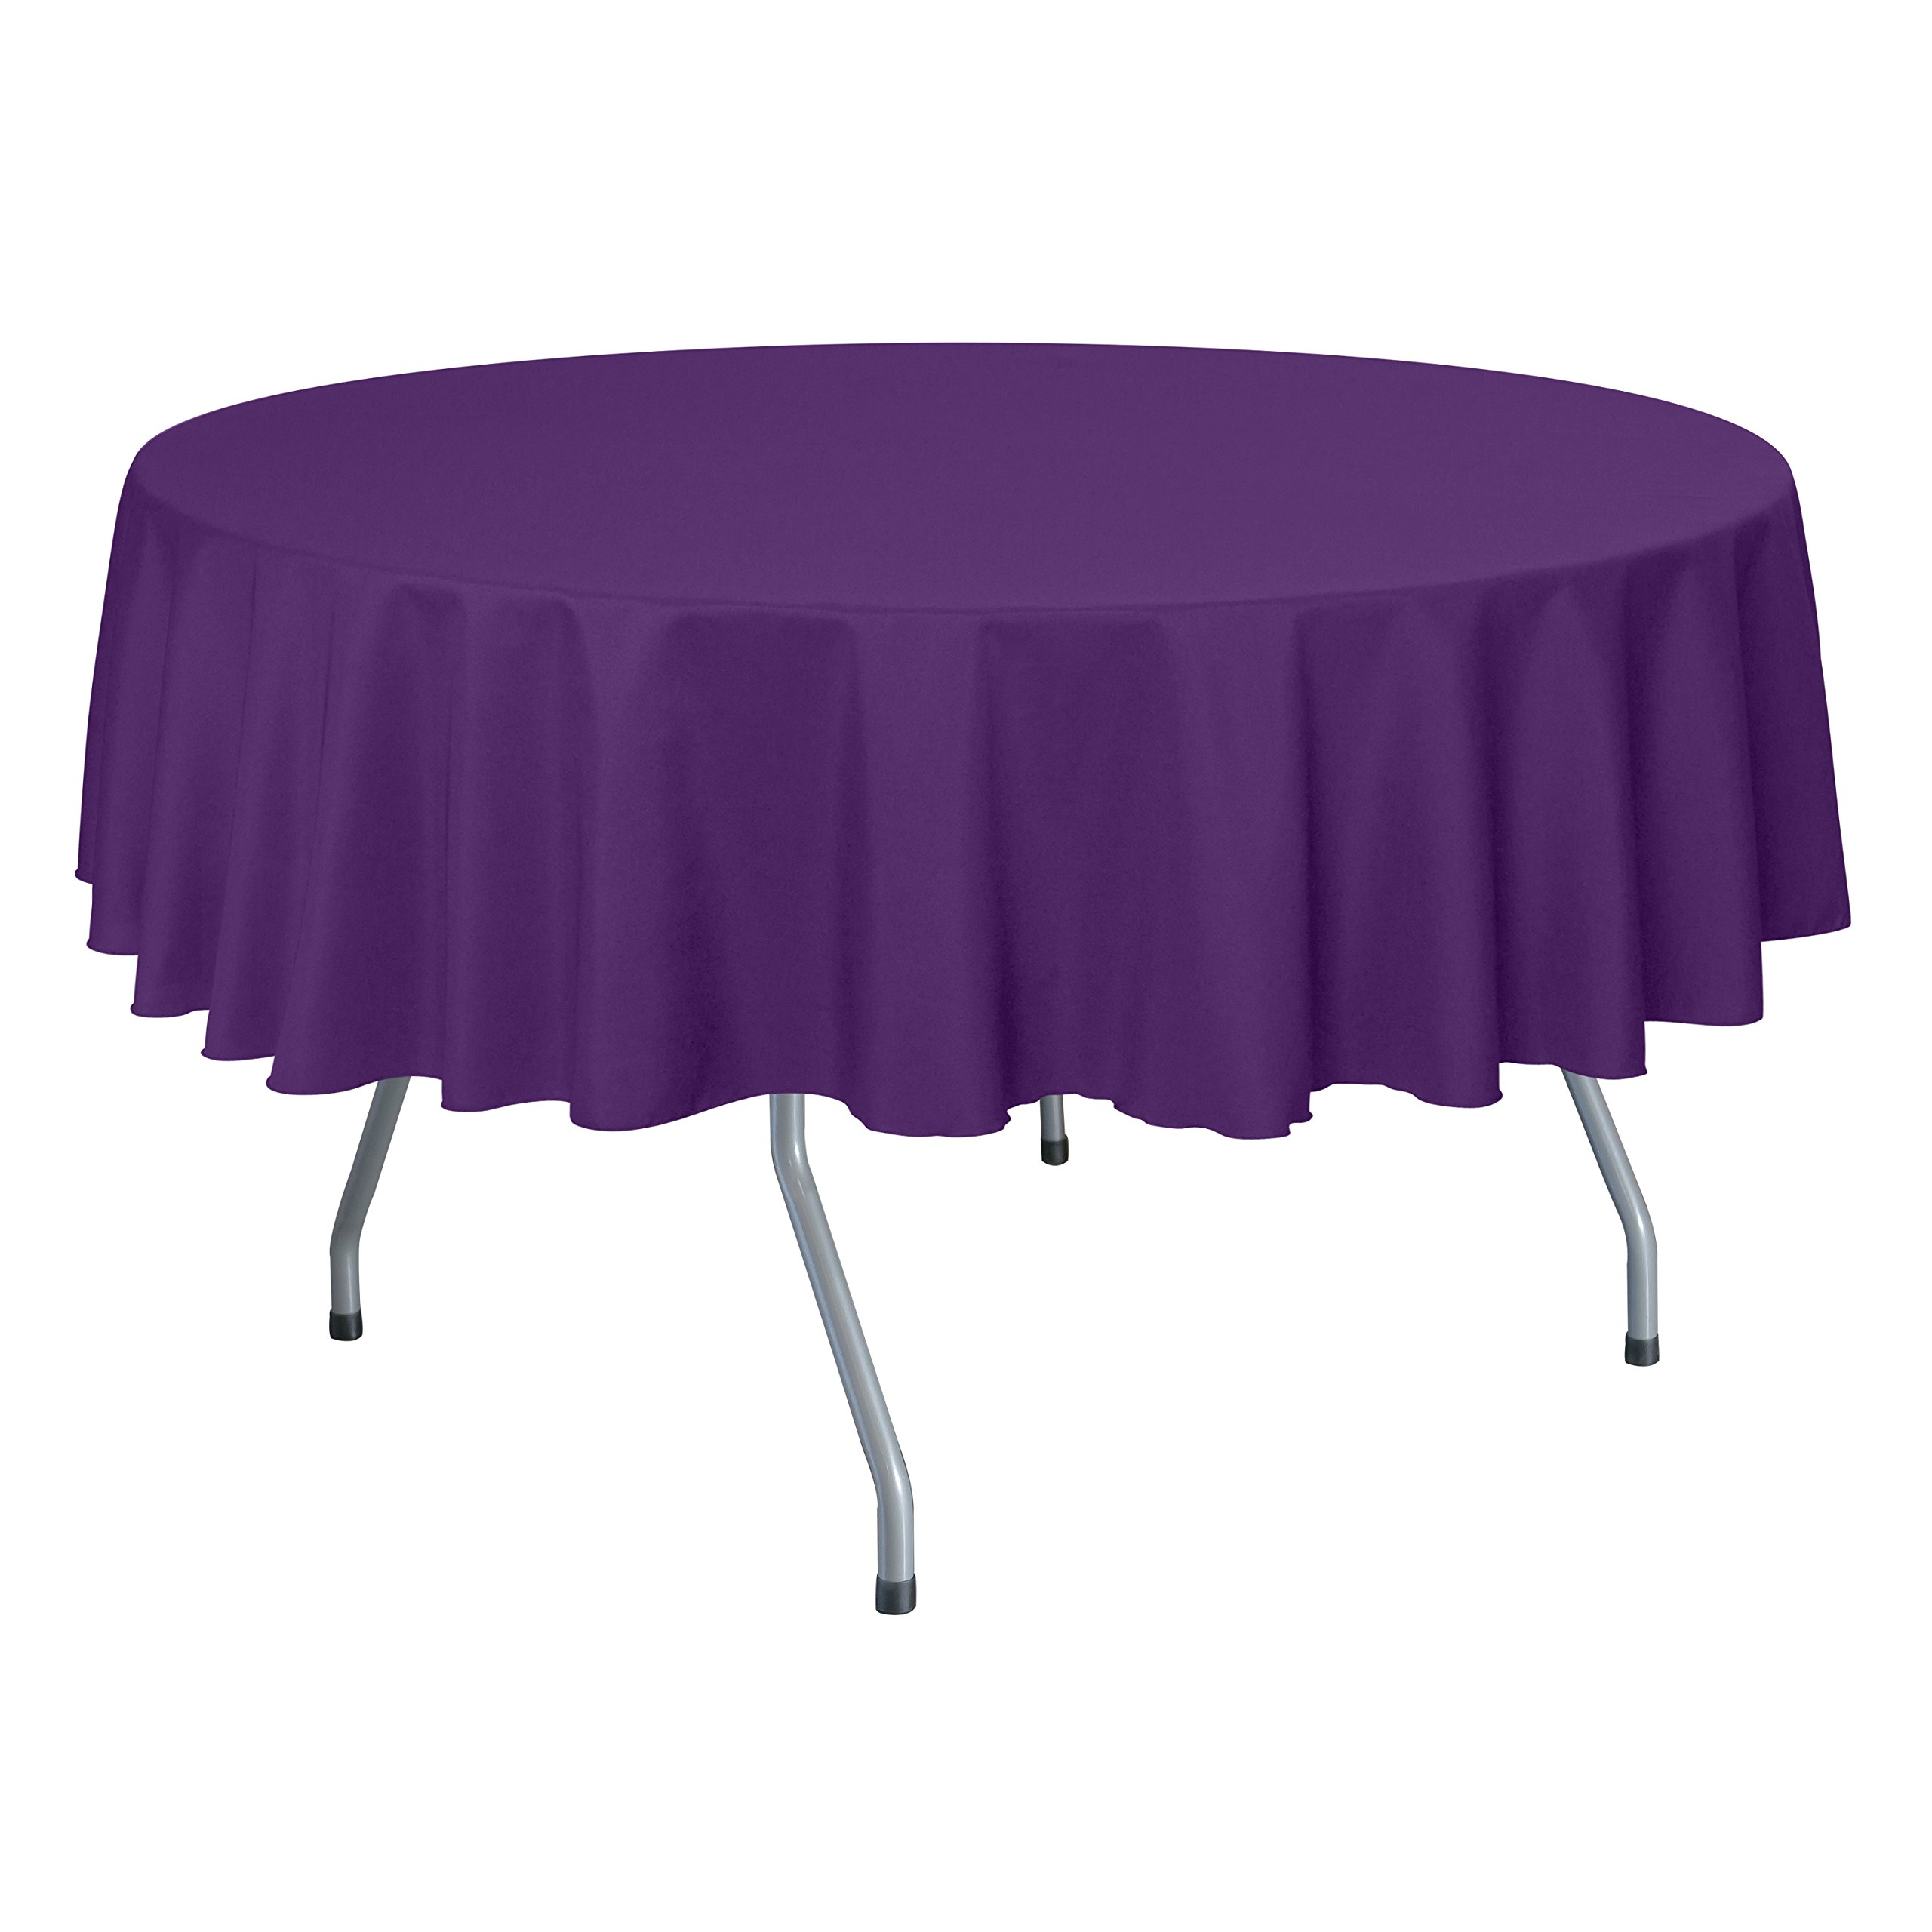 Ultimate Textile (40 Pack) 84-Inch Round Polyester Linen Tablecloth - for Wedding, Restaurant or Banquet use, Plum